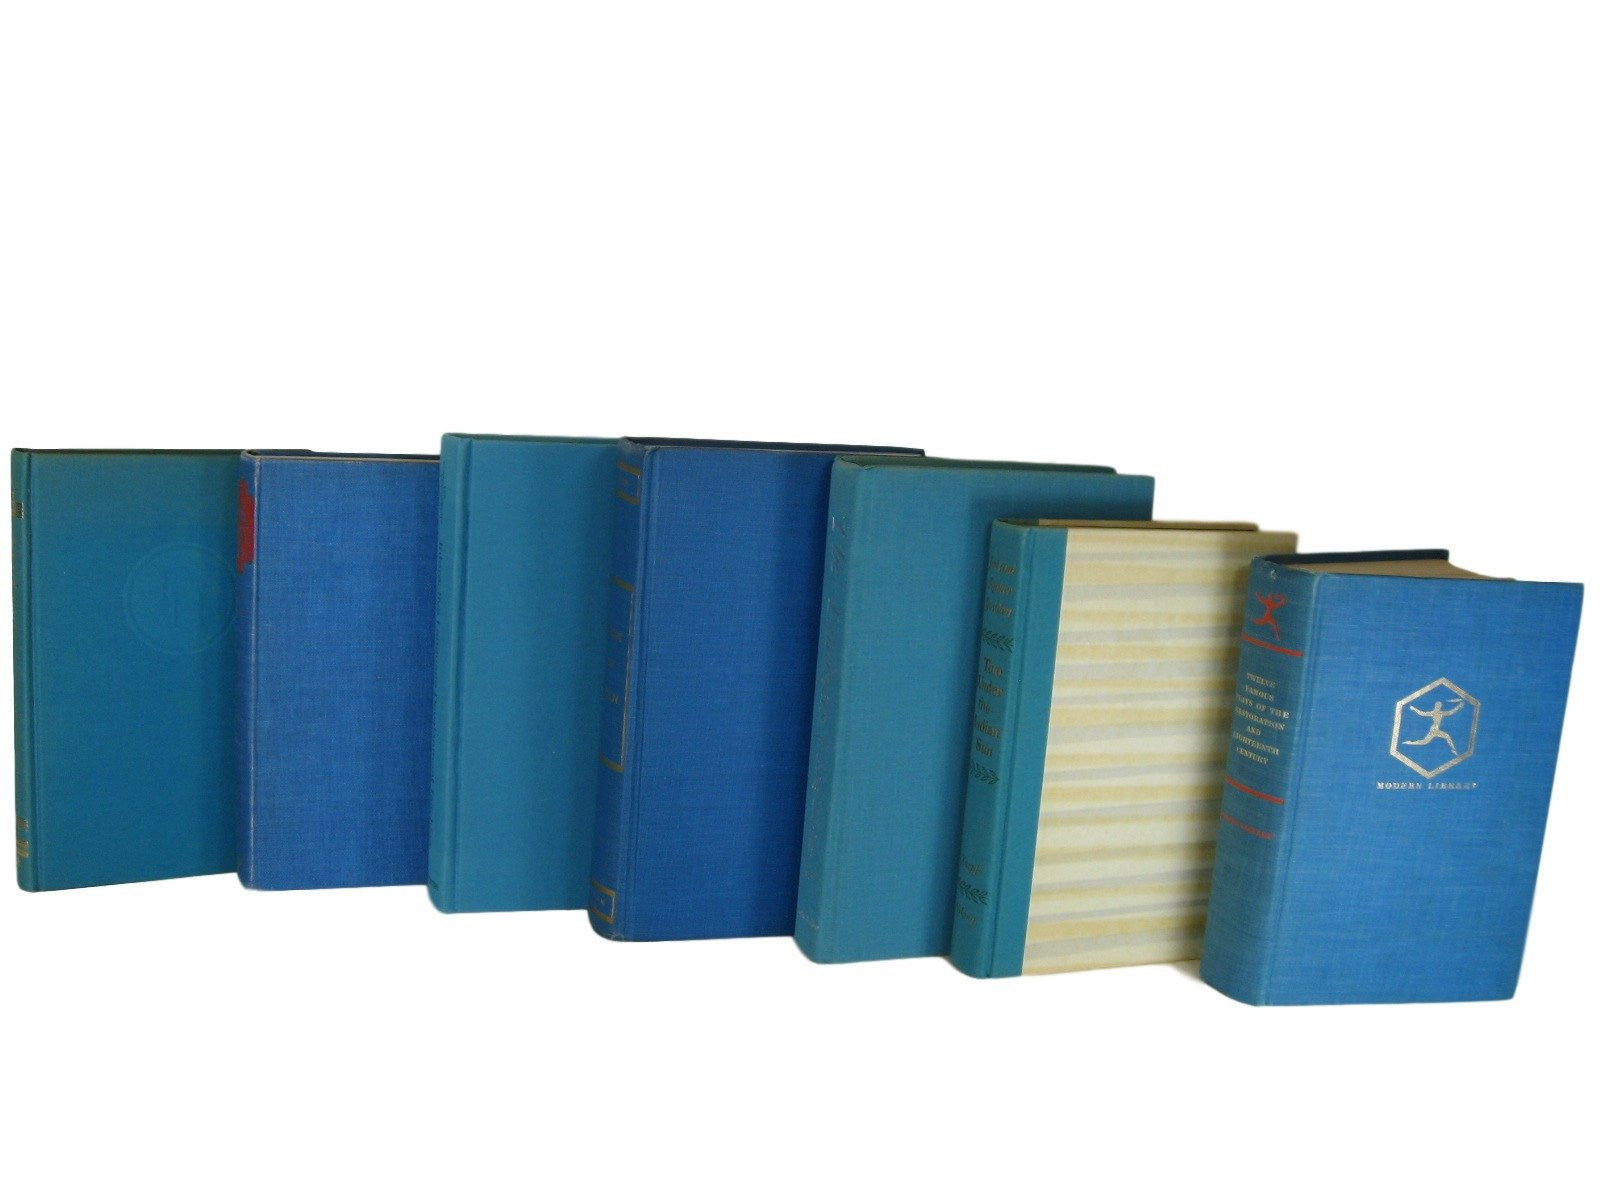 Blue Green Vintage Book Decor, S/7 - Decades of Vintage